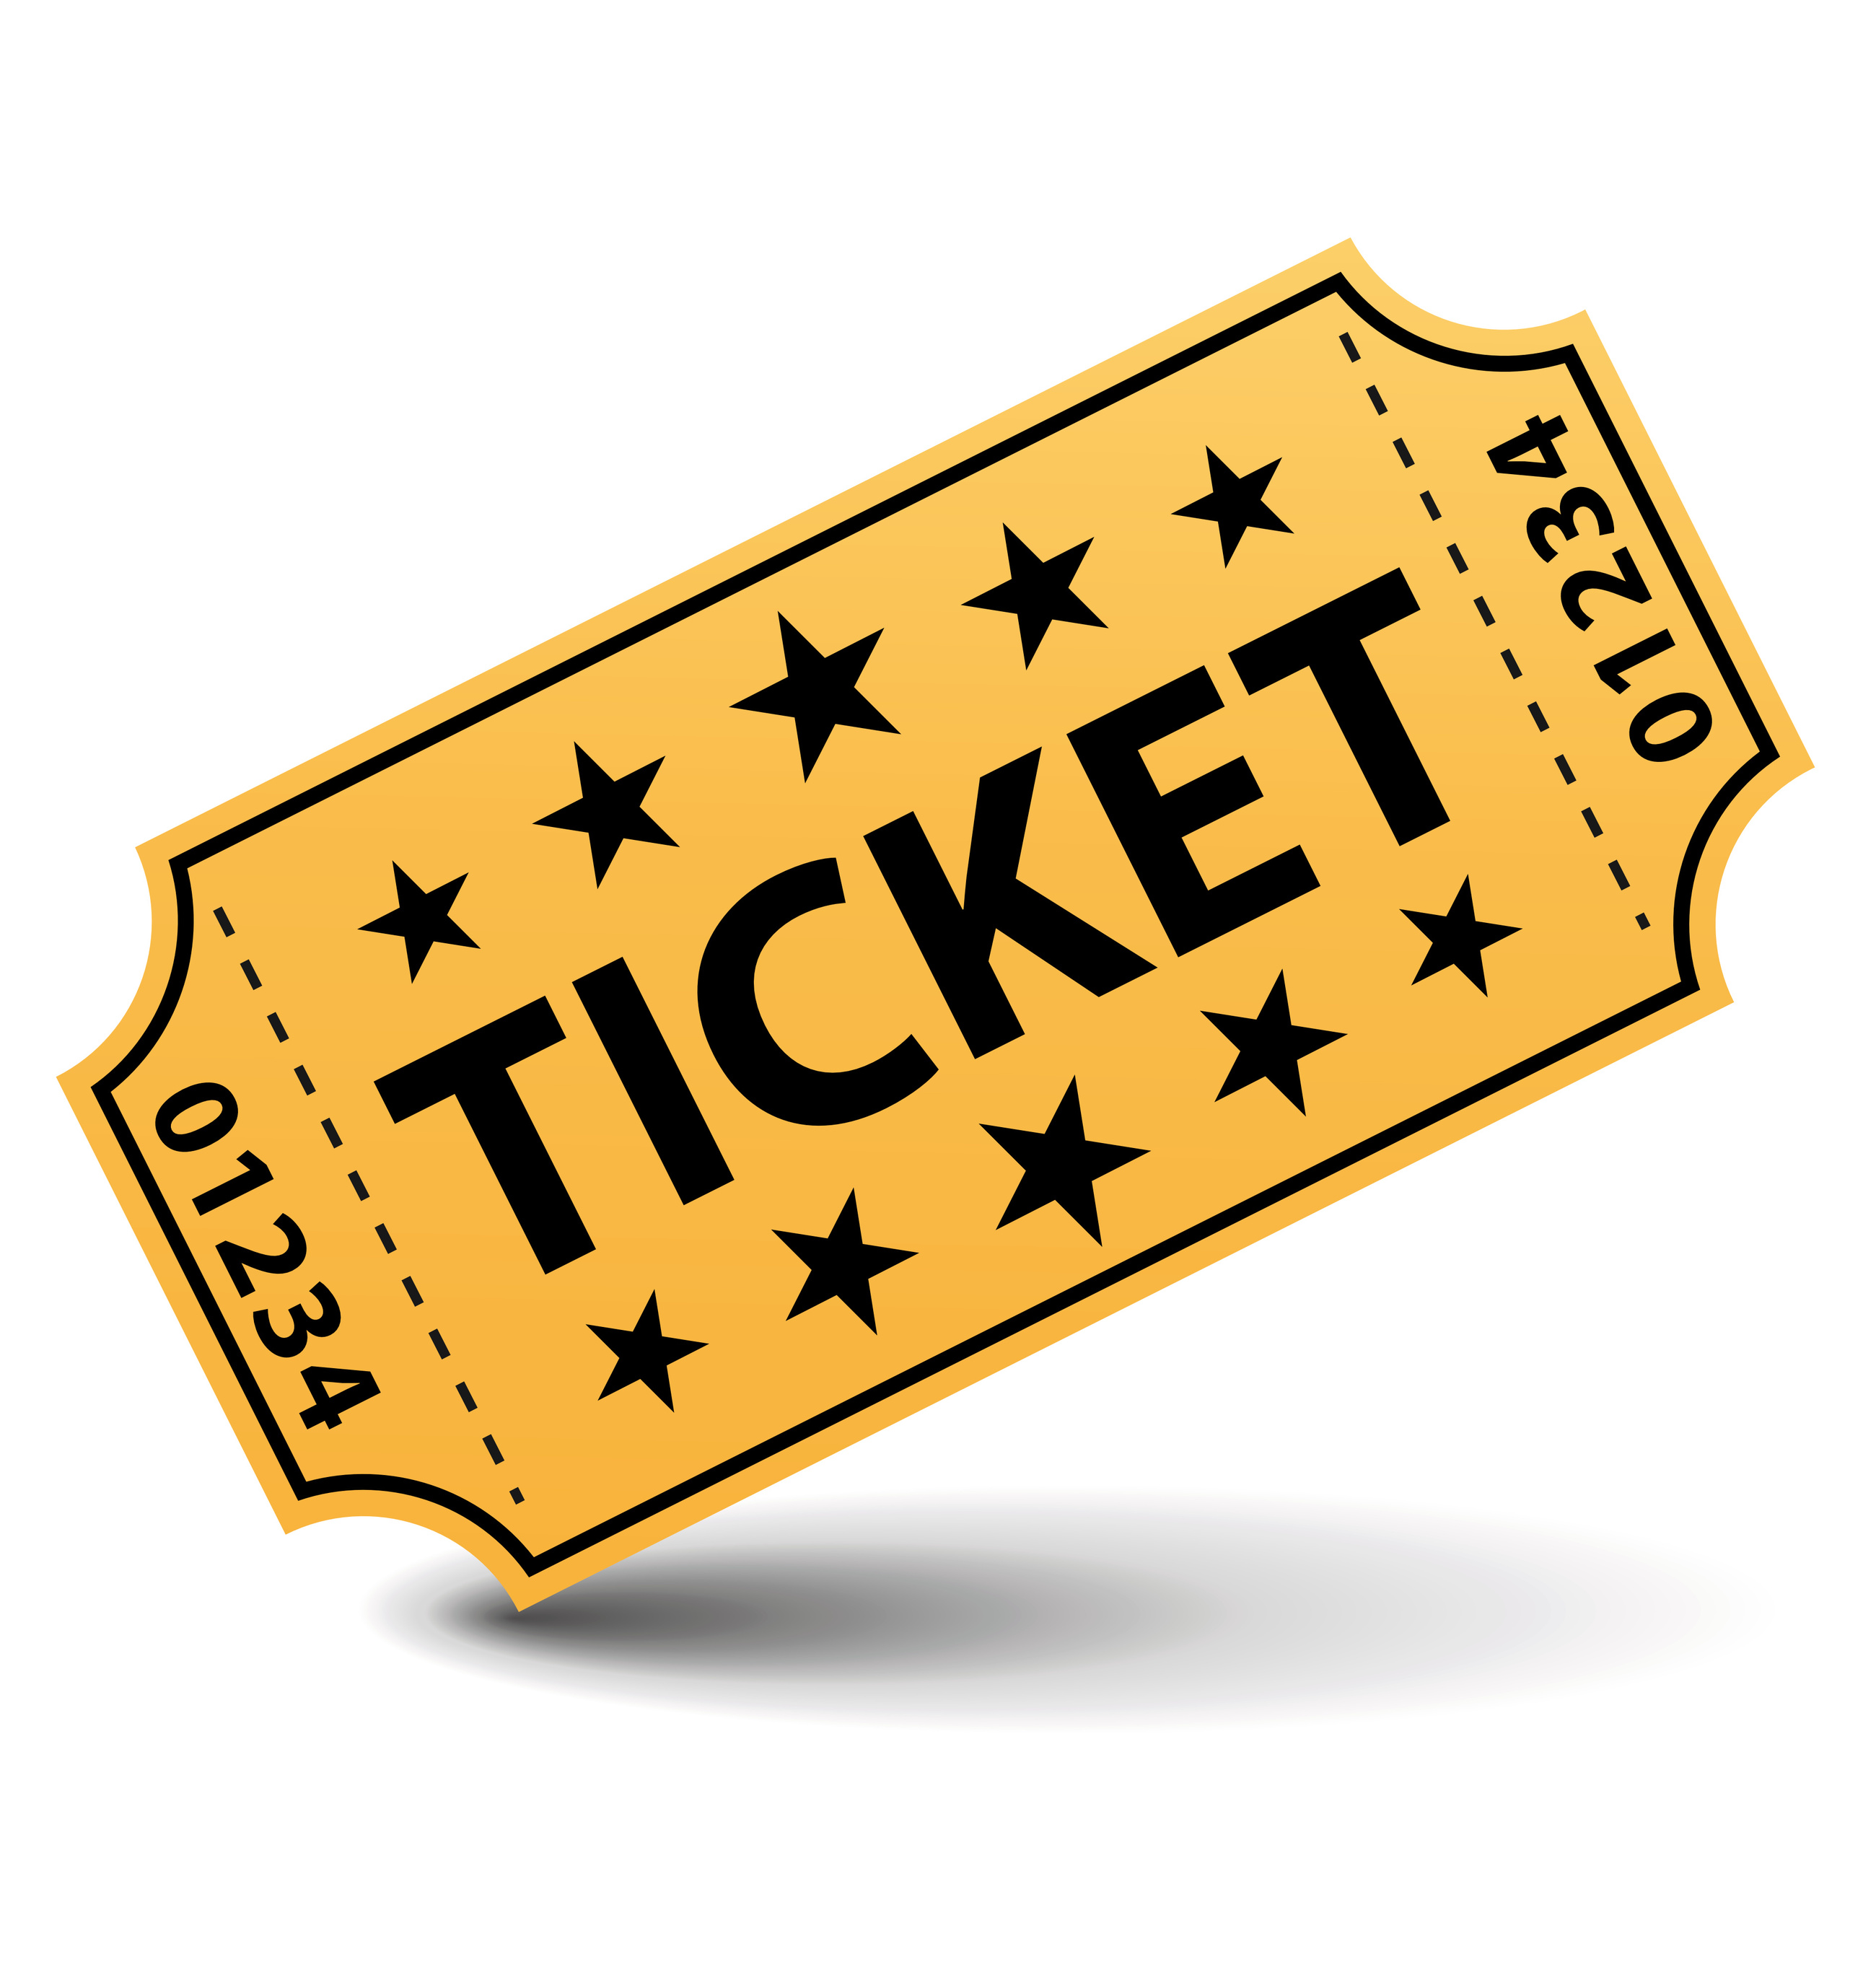 Buy Raffle Tickets There Are 5 Great Bas-Buy Raffle Tickets There Are 5 Great Baskets To Choose From This Year-1